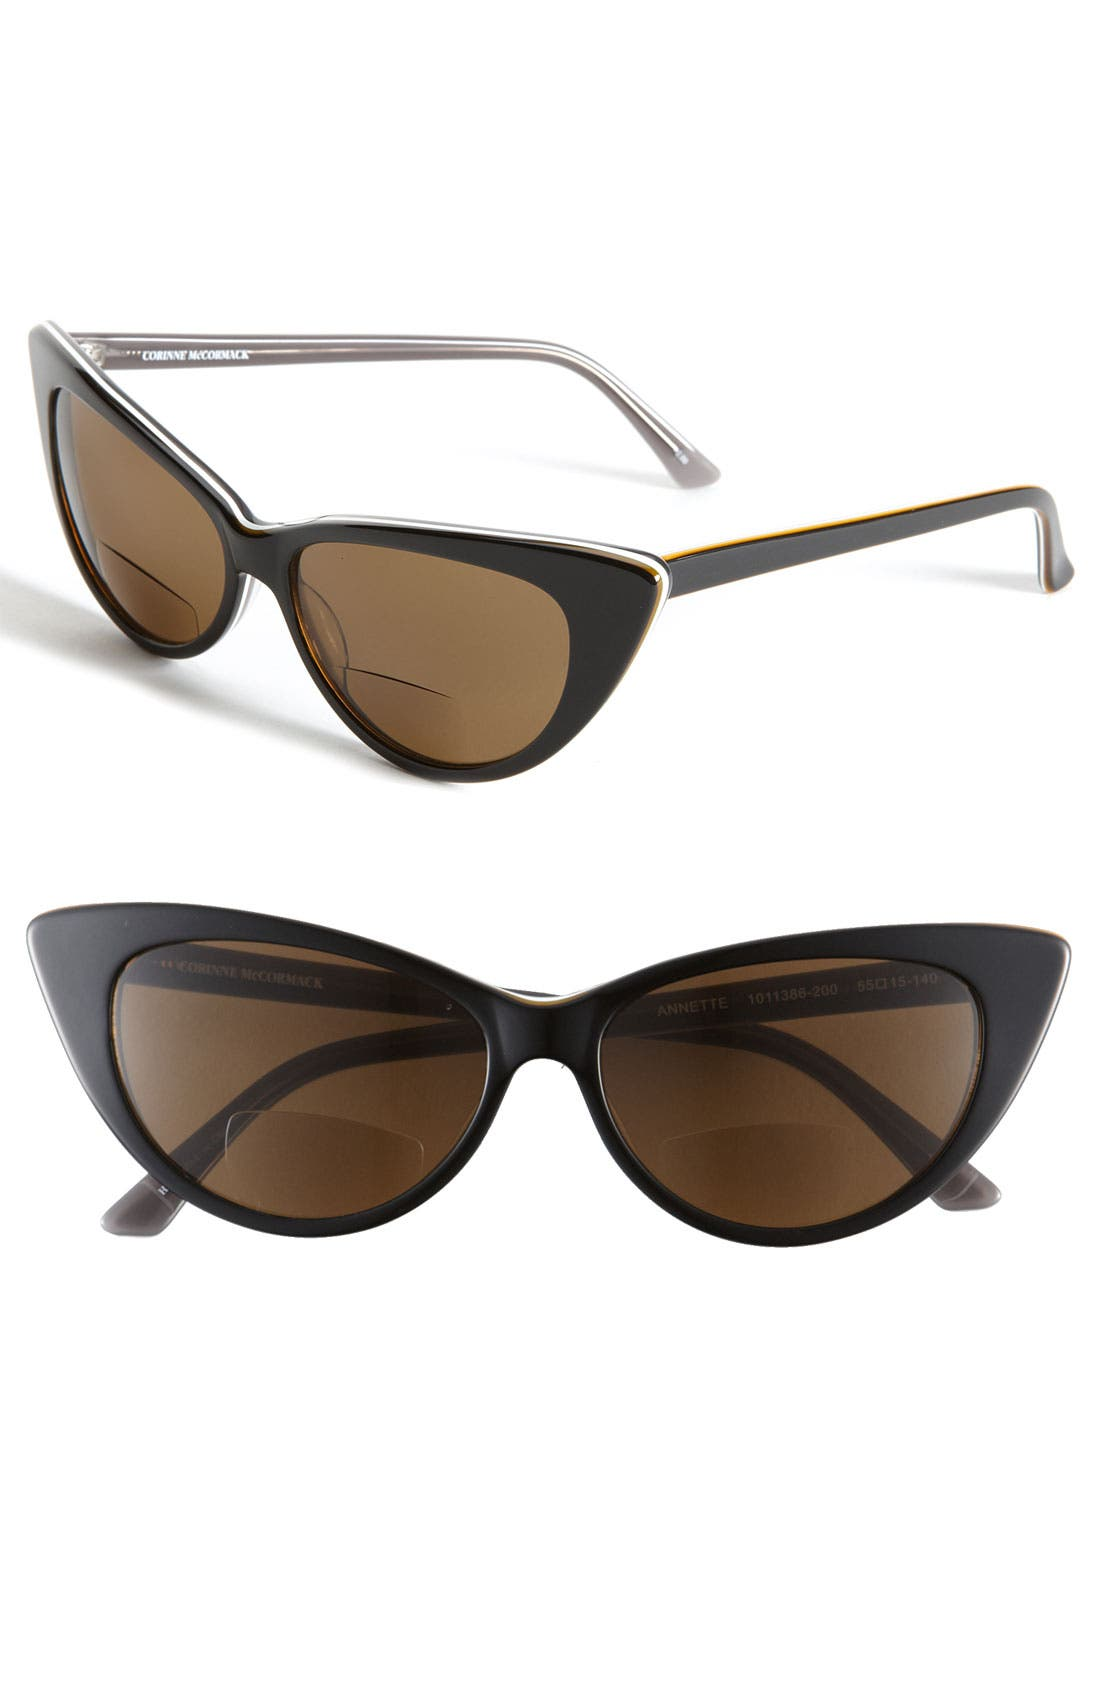 Alternate Image 1 Selected - Corinne McCormack Reading Sunglasses (2 for $88)